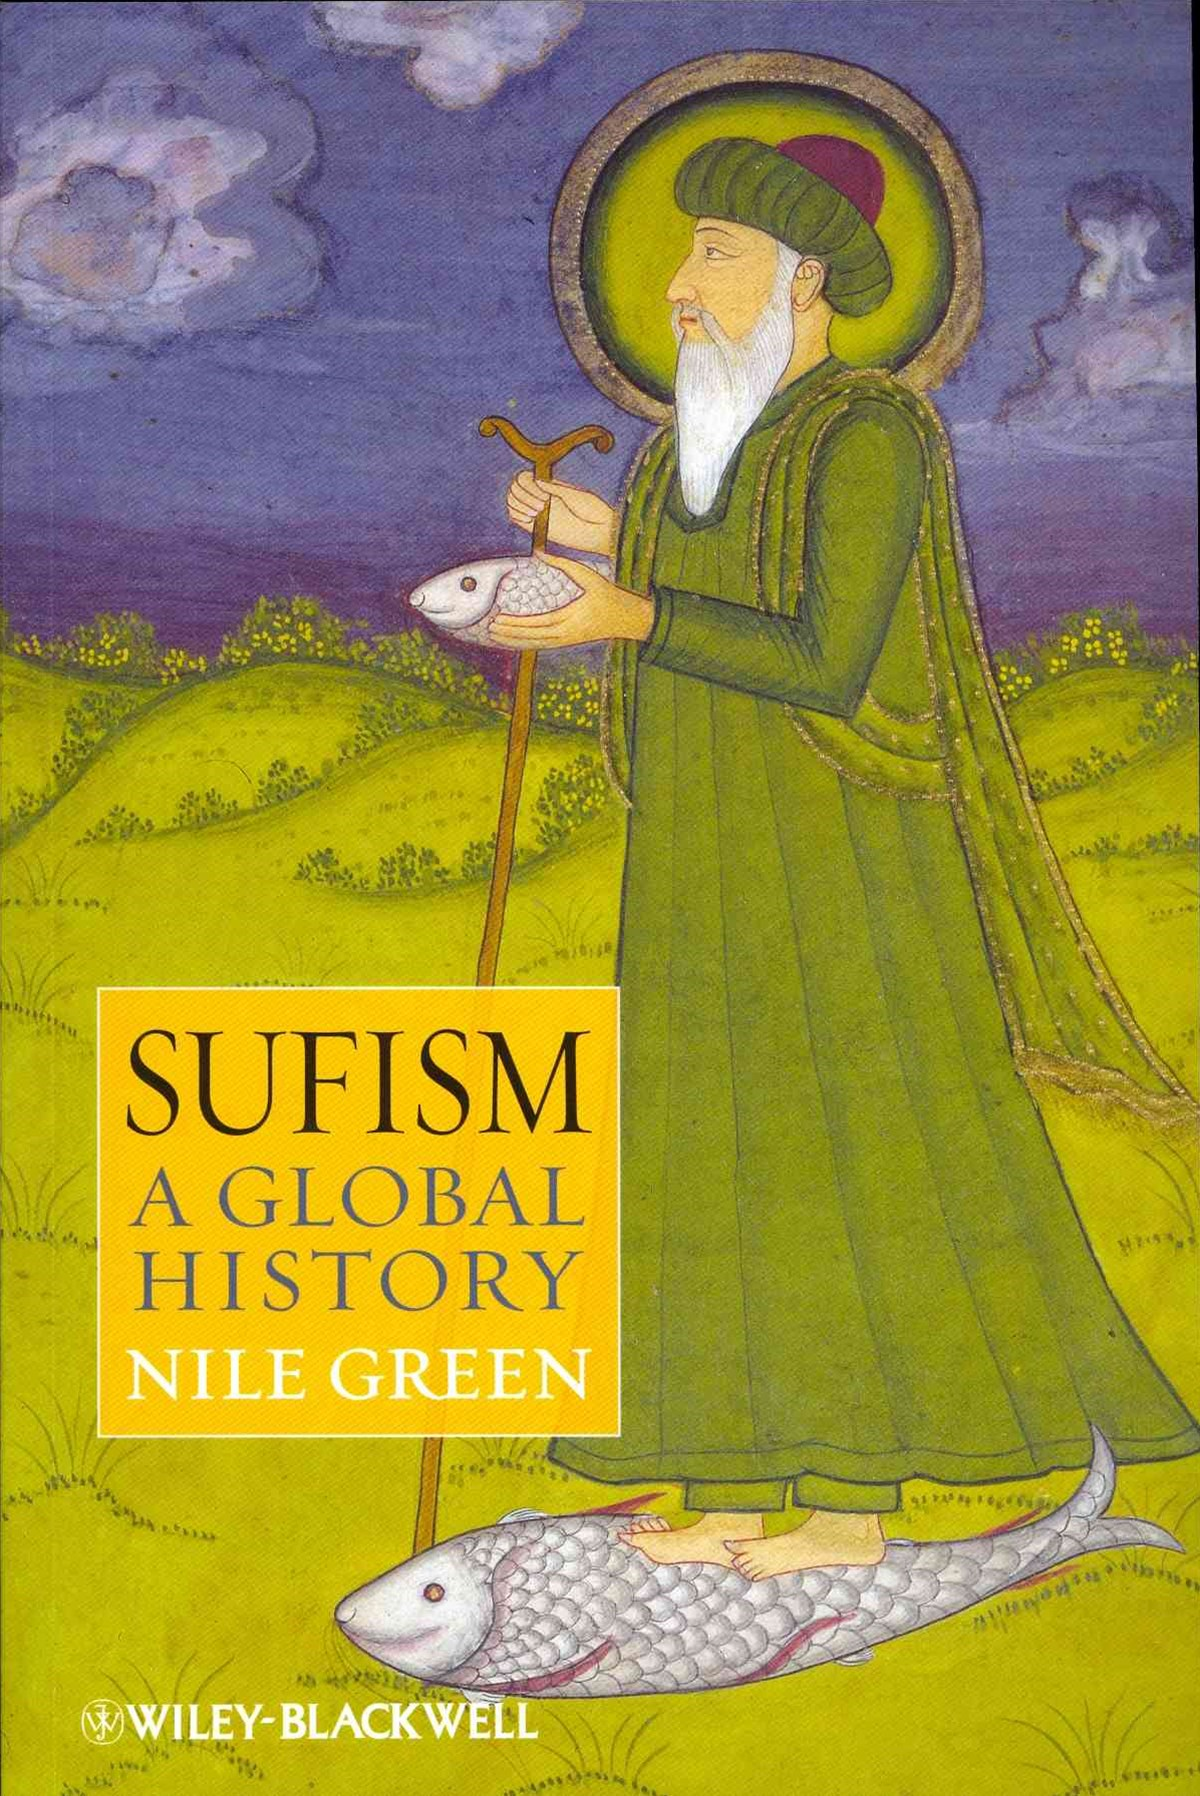 Sufism - a Global History